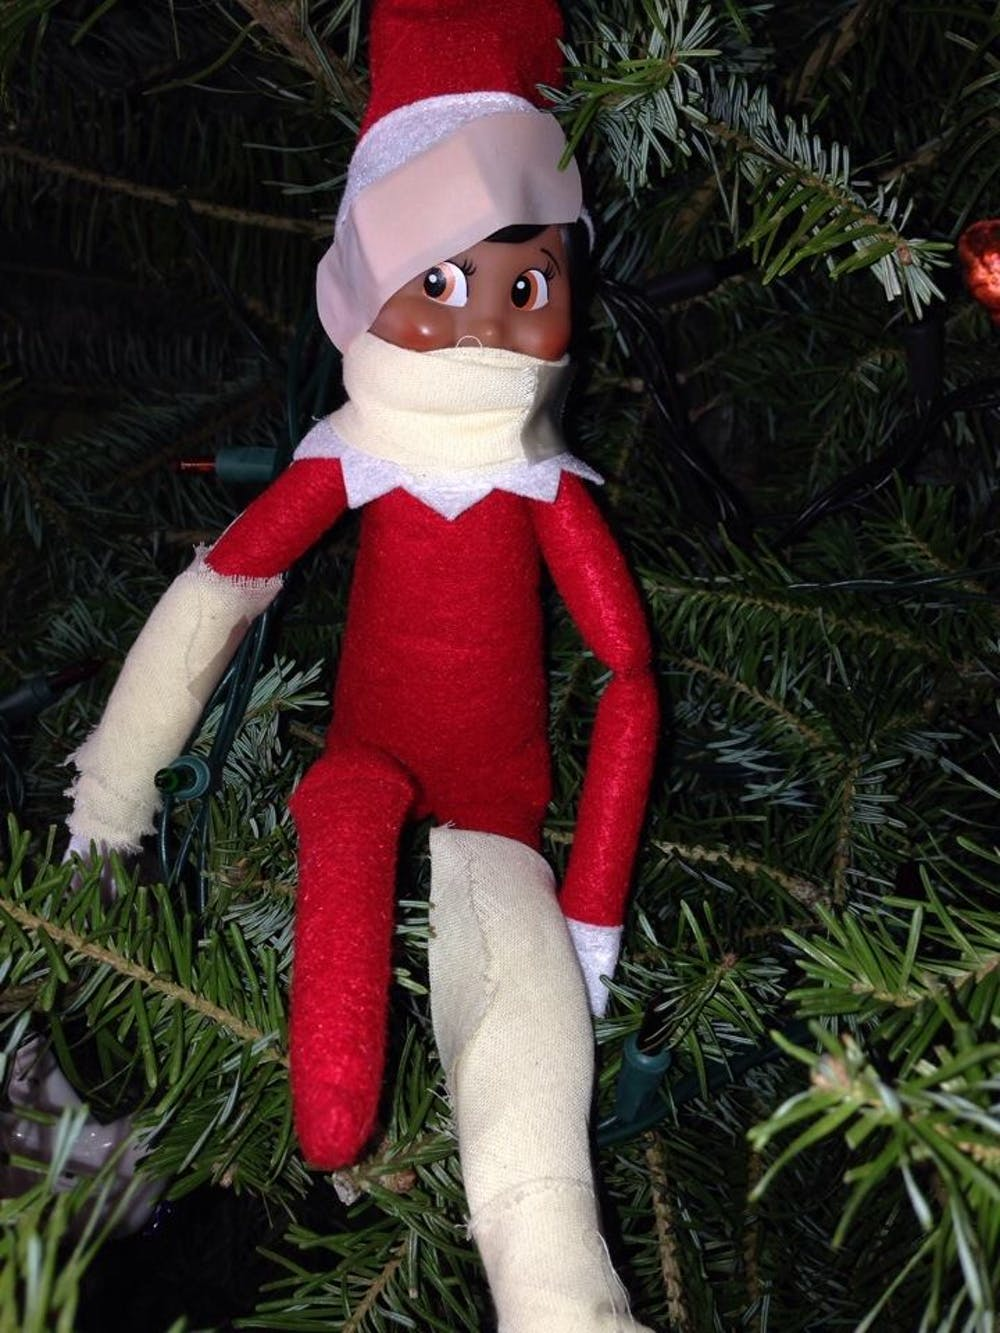 Elf on a shelf anybody?  - Page 4 Qb57t82d-1387989881.jpg?ixlib=rb-1.1